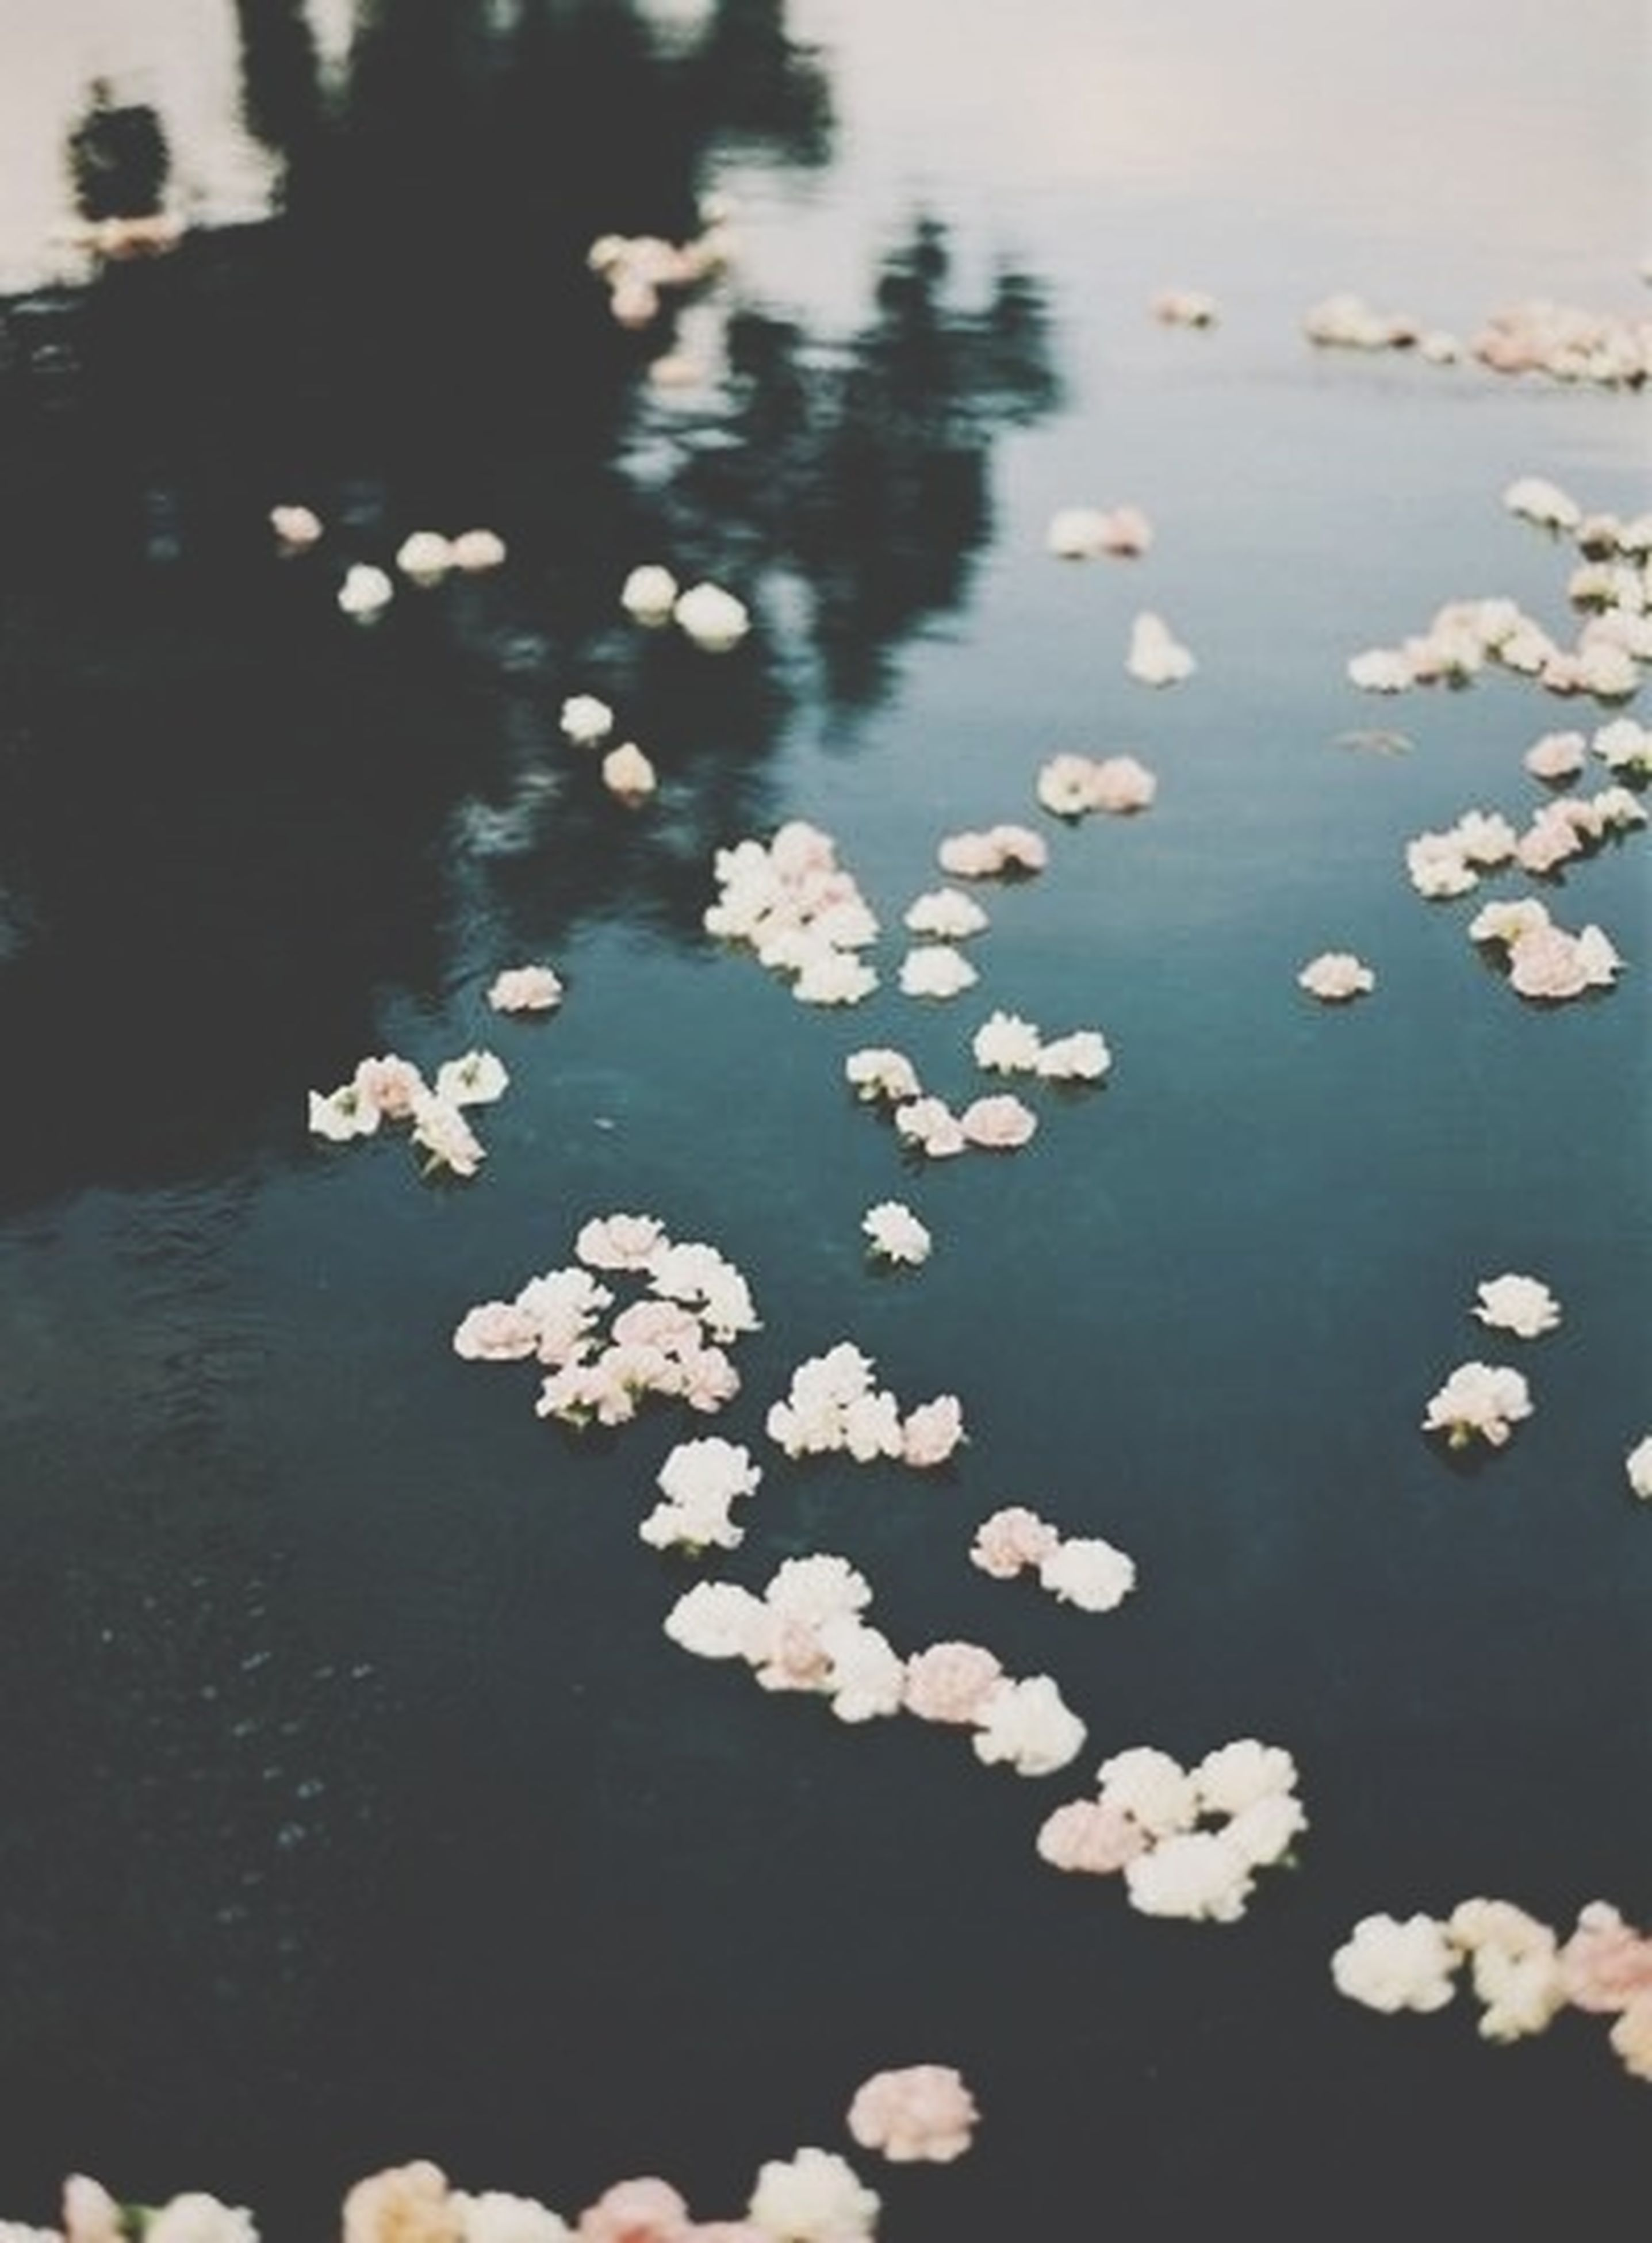 water, flower, lake, nature, beauty in nature, floating on water, high angle view, reflection, tranquility, petal, pond, waterfront, outdoors, fragility, day, leaf, growth, freshness, no people, plant